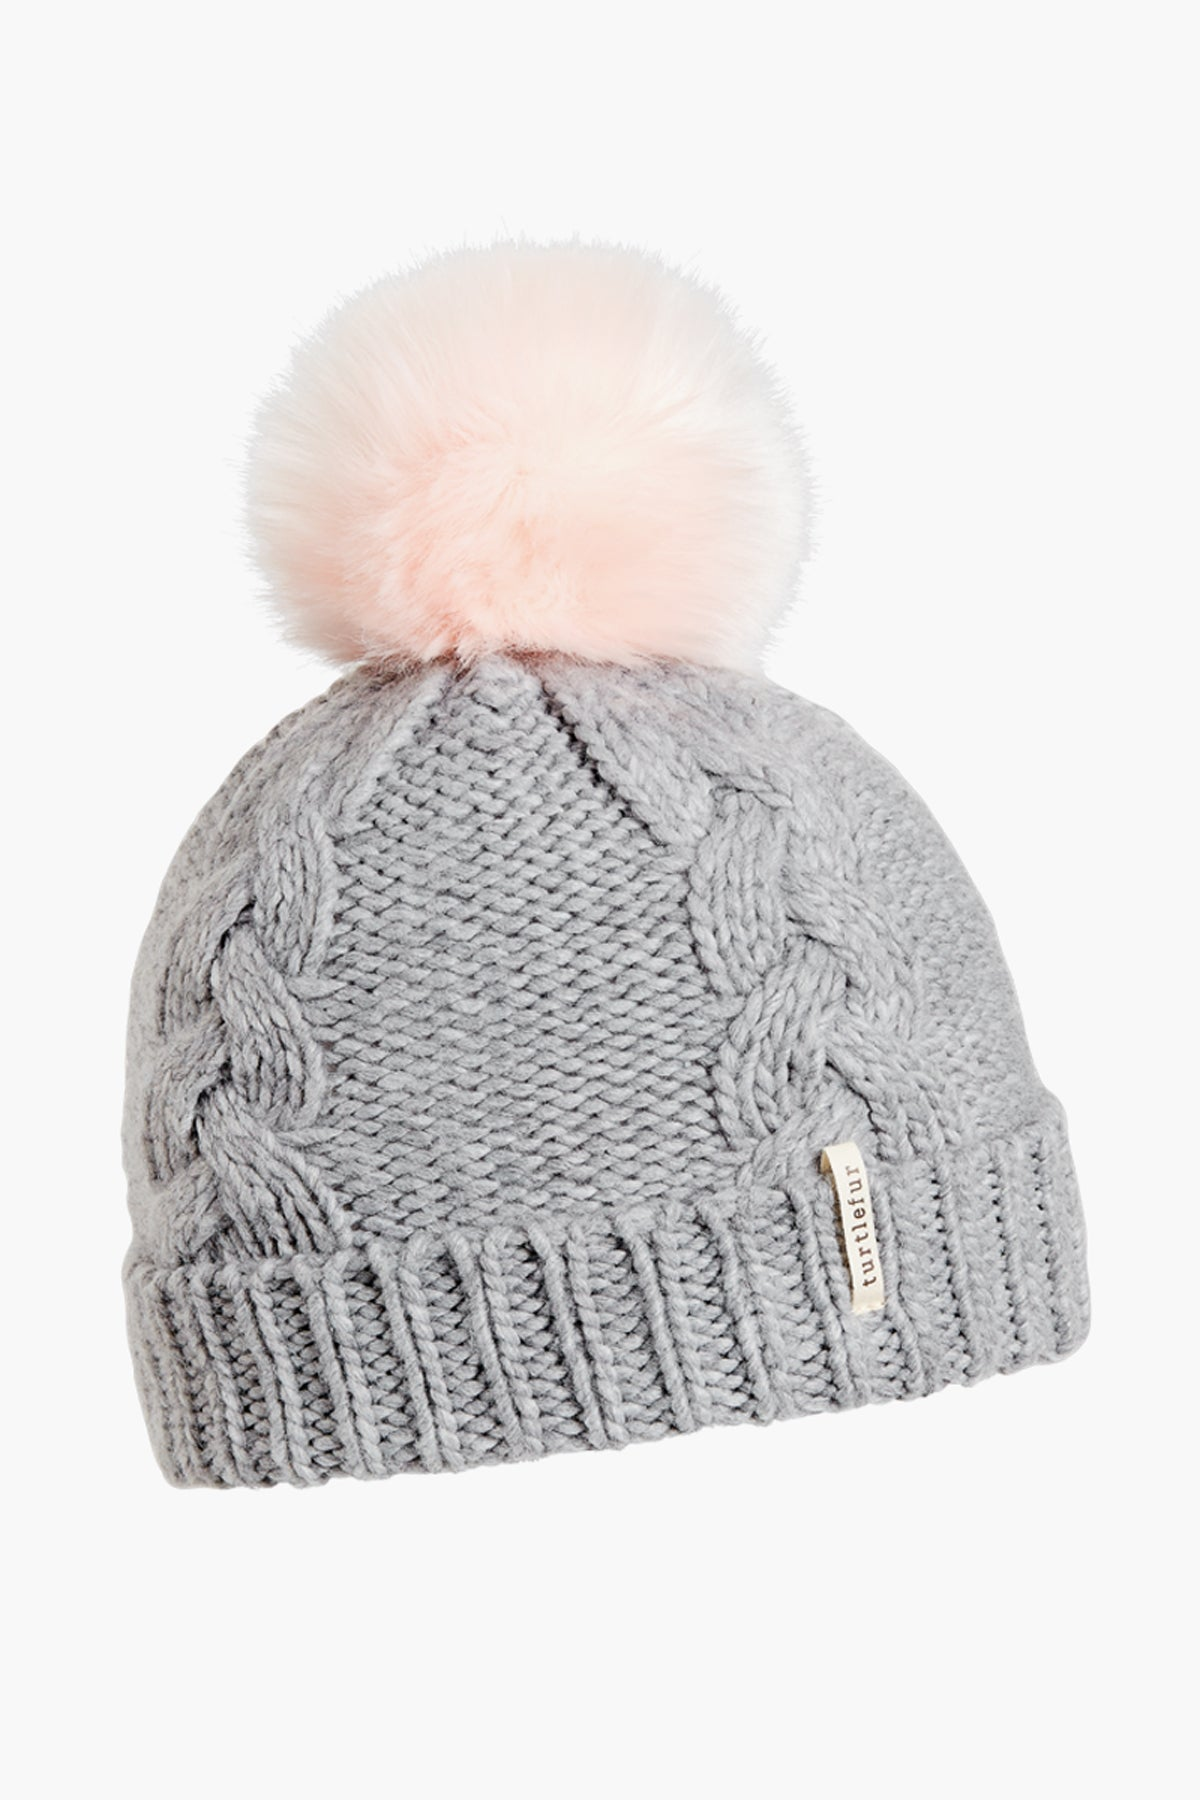 Turtle Fur Lizzy Kids Hat - Smoke